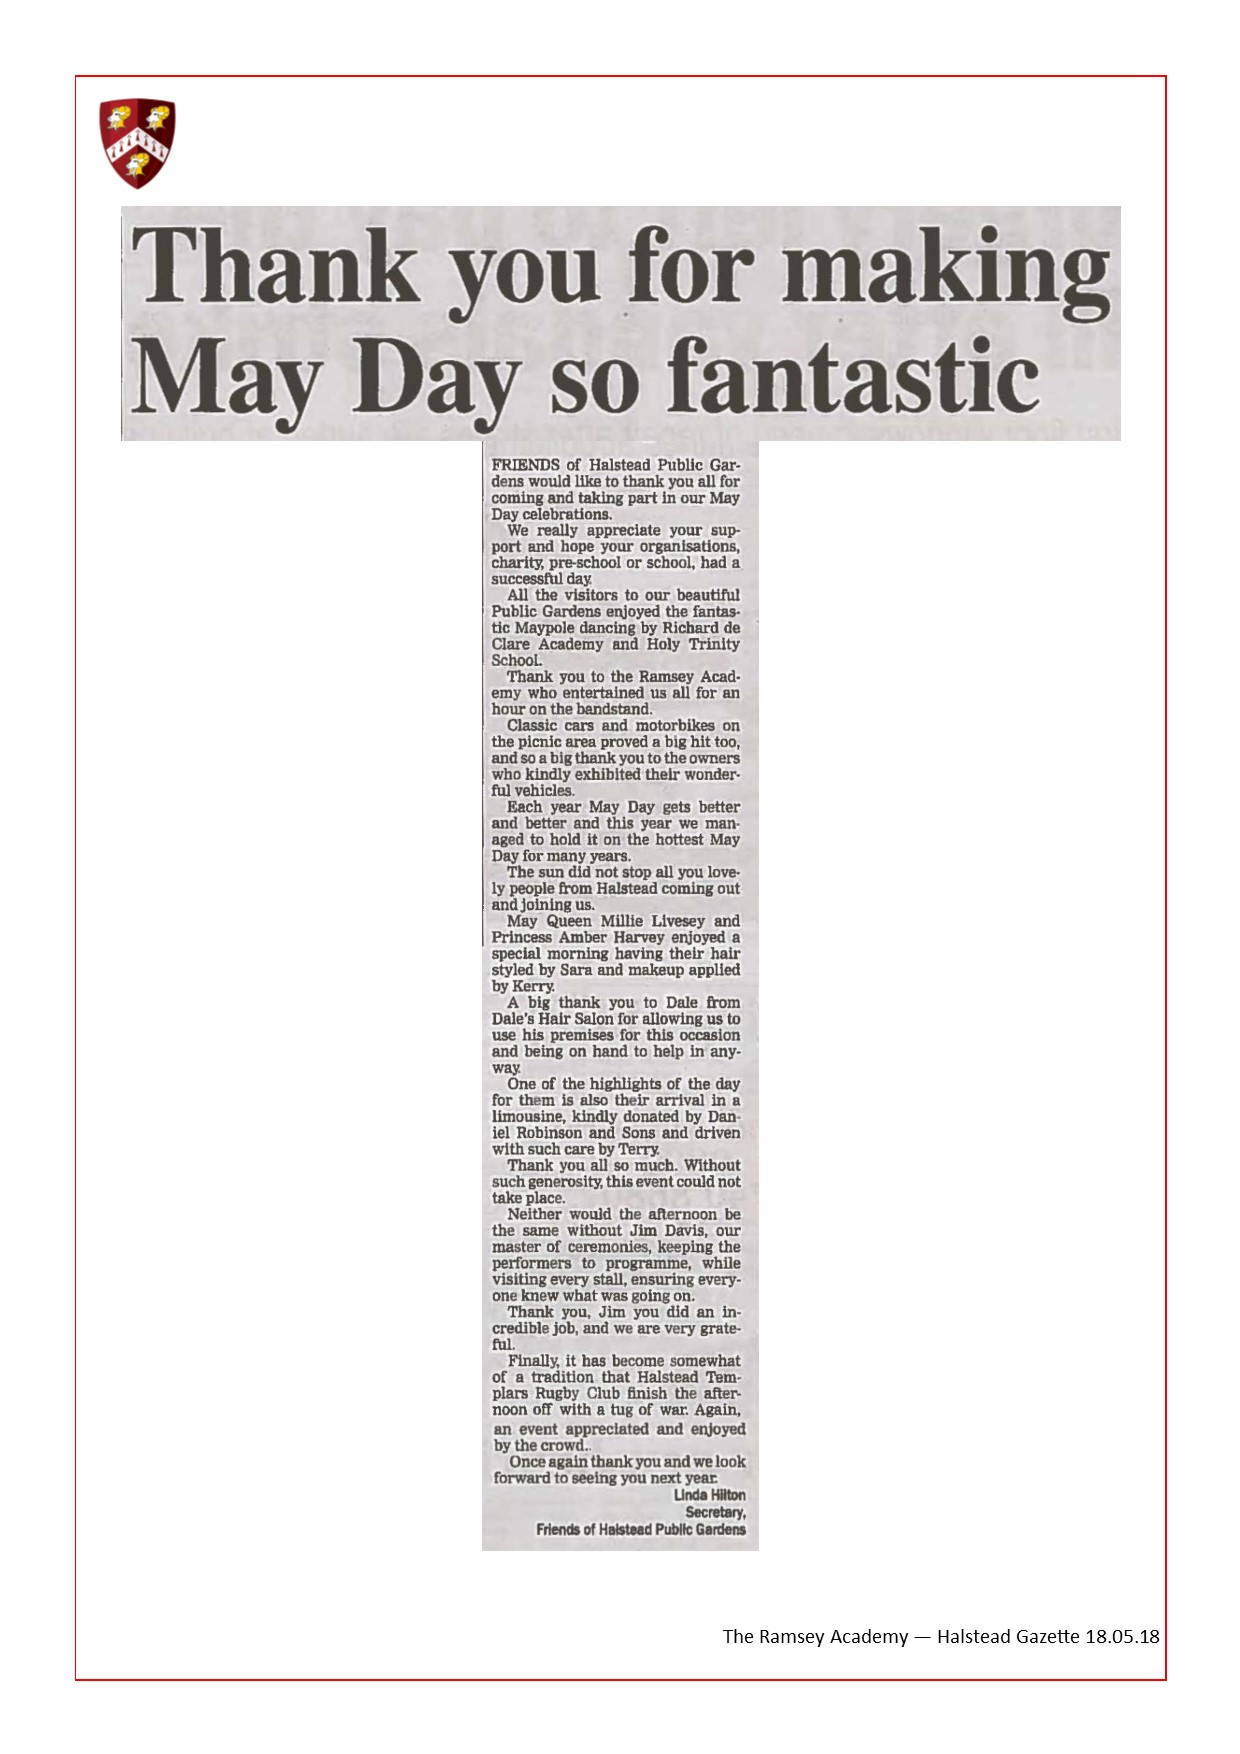 Thank You For Making May Day So Fantastic 18.05.18